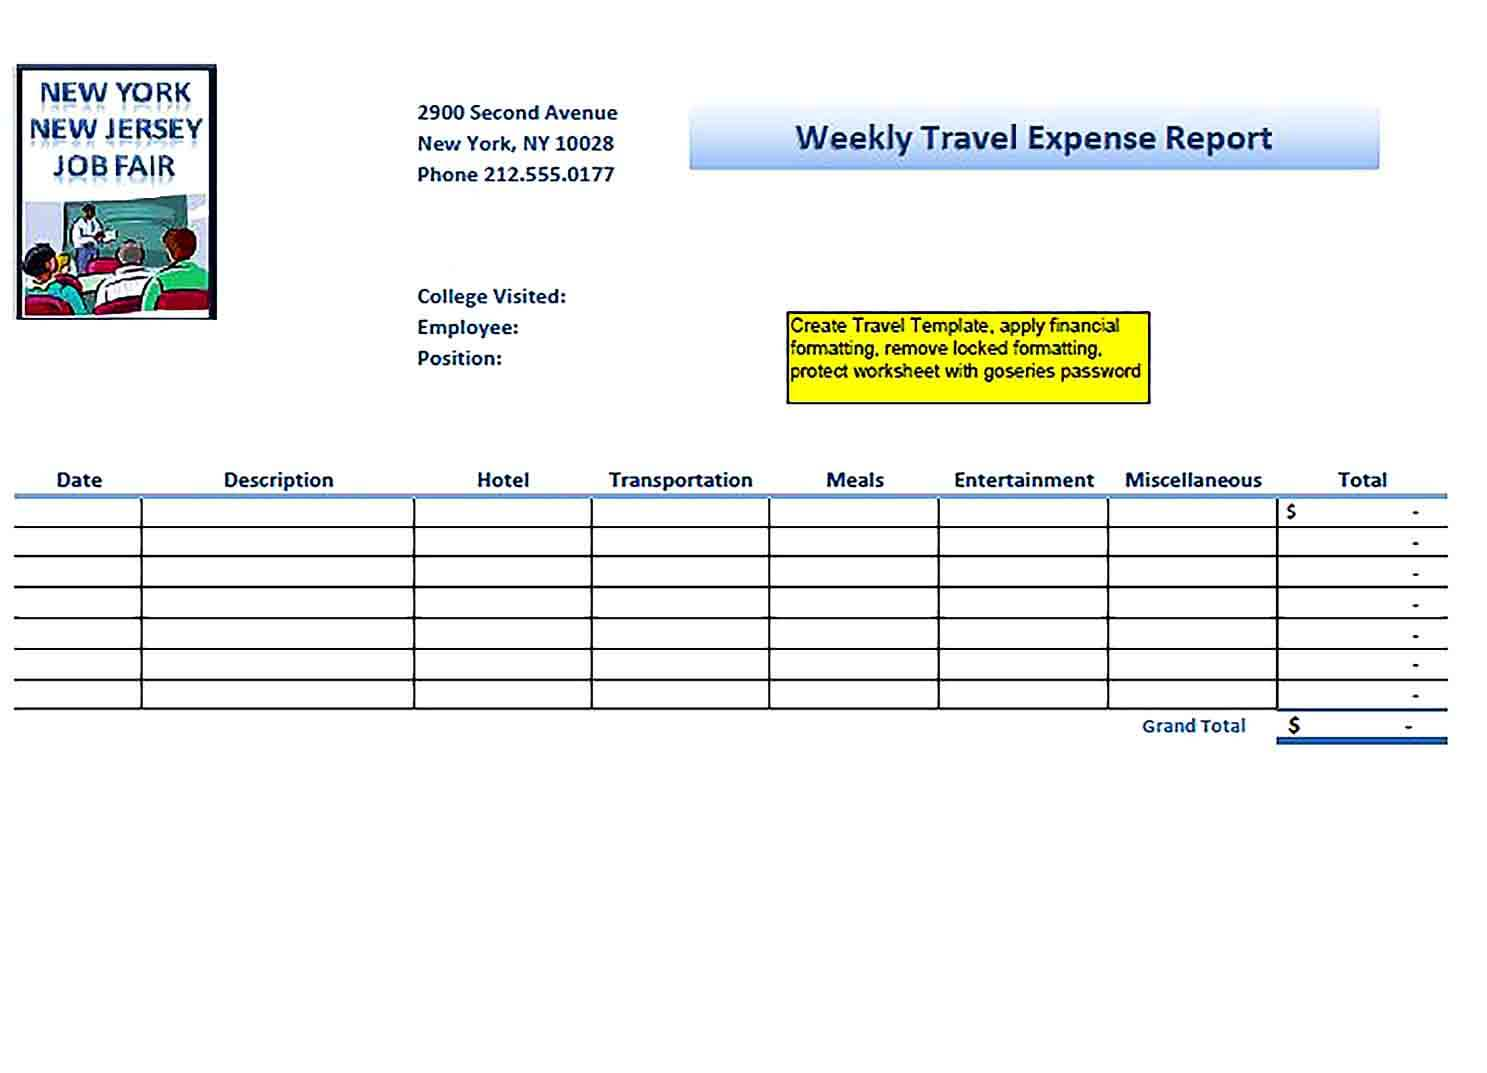 Sample Weekly Travel Expense Report